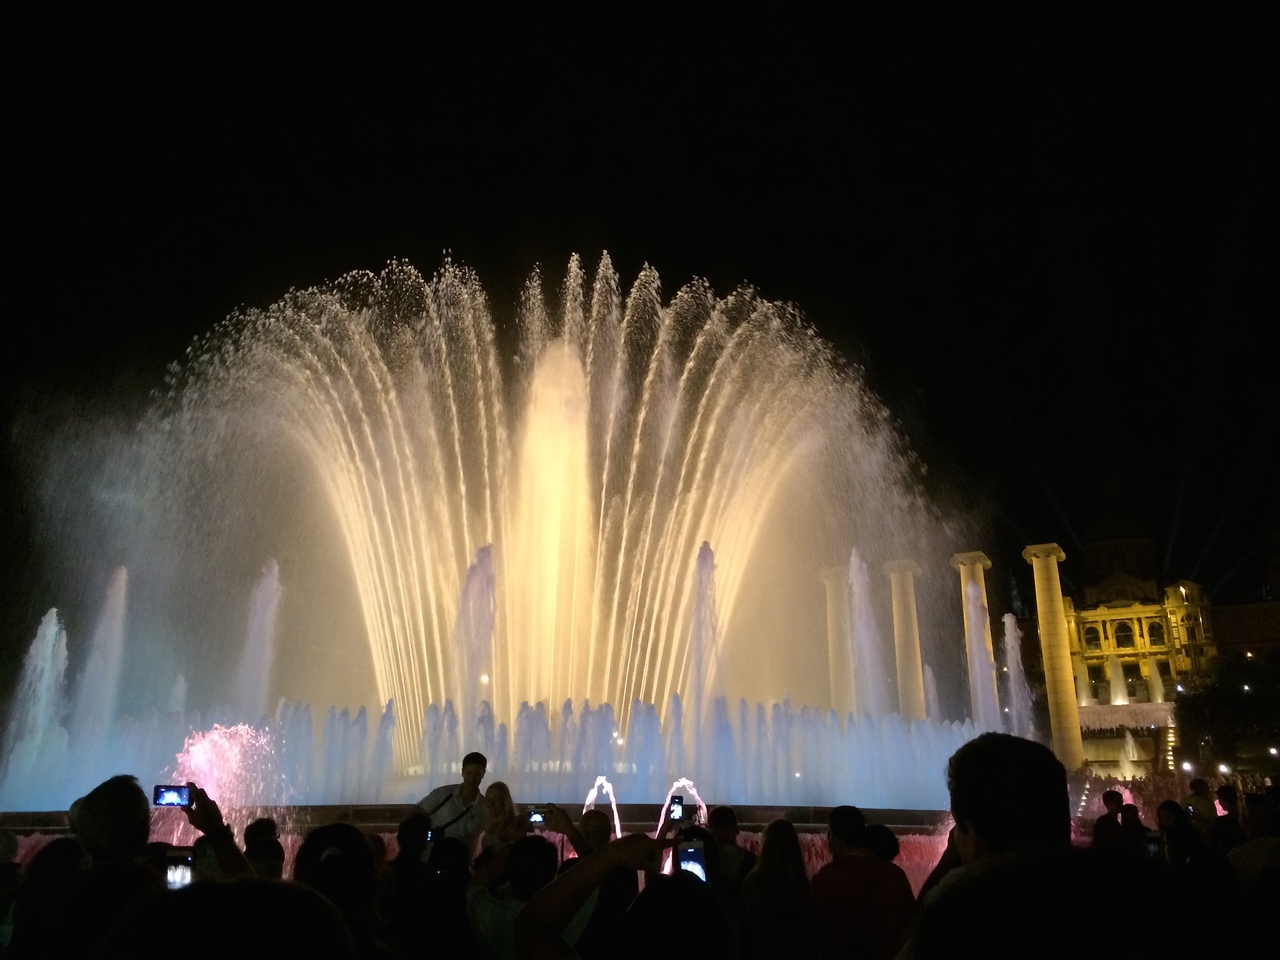 The waters dance and change colors to music. Very impressive for something built in 1929....Bellagio fountains in Vegas is great, but here you are in Barcelona and have a backdrop of the National Palace so it's special and priceless!!!!